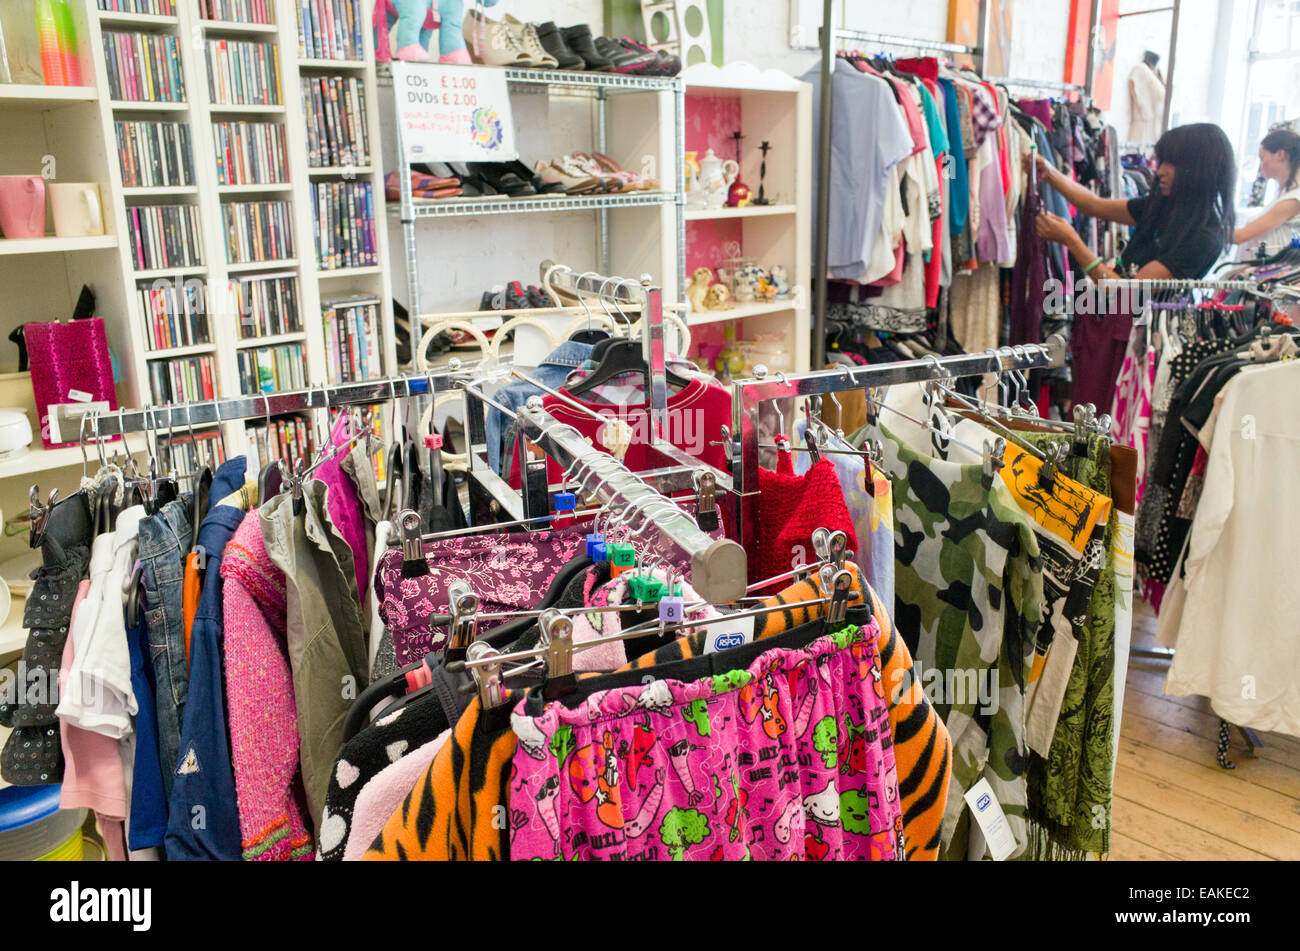 Secondhand clothes in the RSPCA charity shop, London, UK - Stock Image